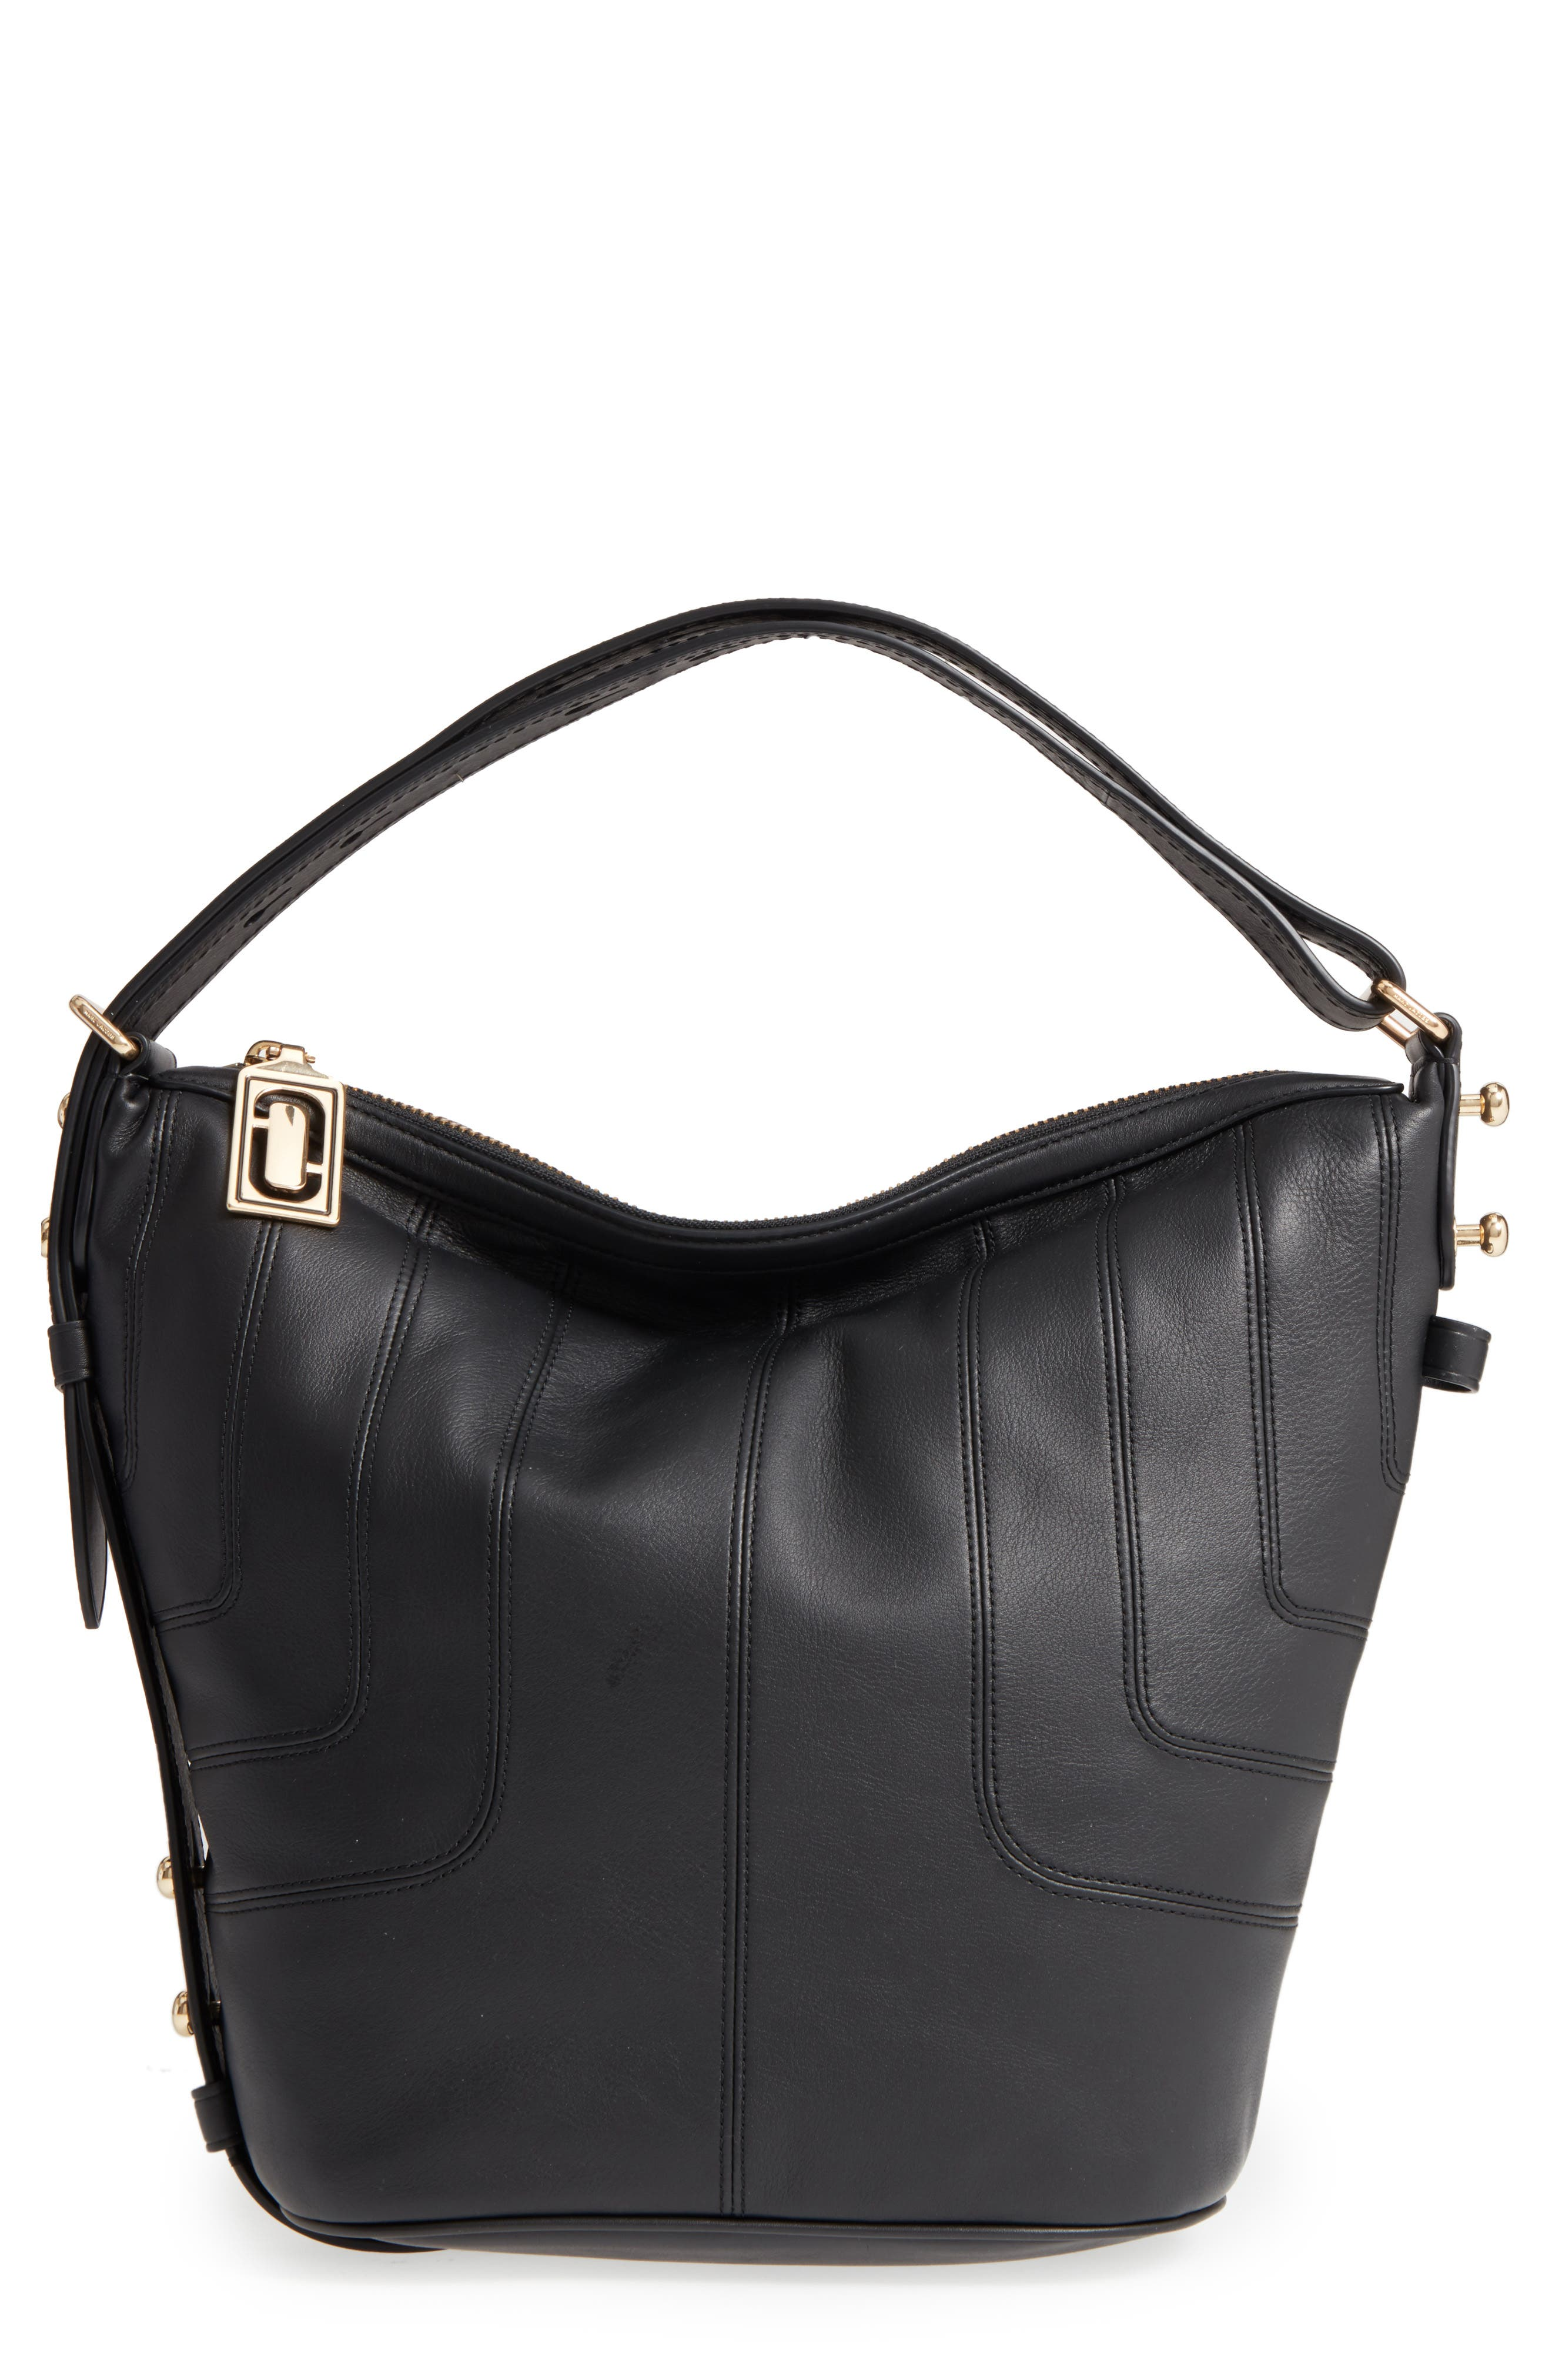 Main Image - MARC JACOBS The Sling Mod Leather Hobo/Crossbody/Sling Bag